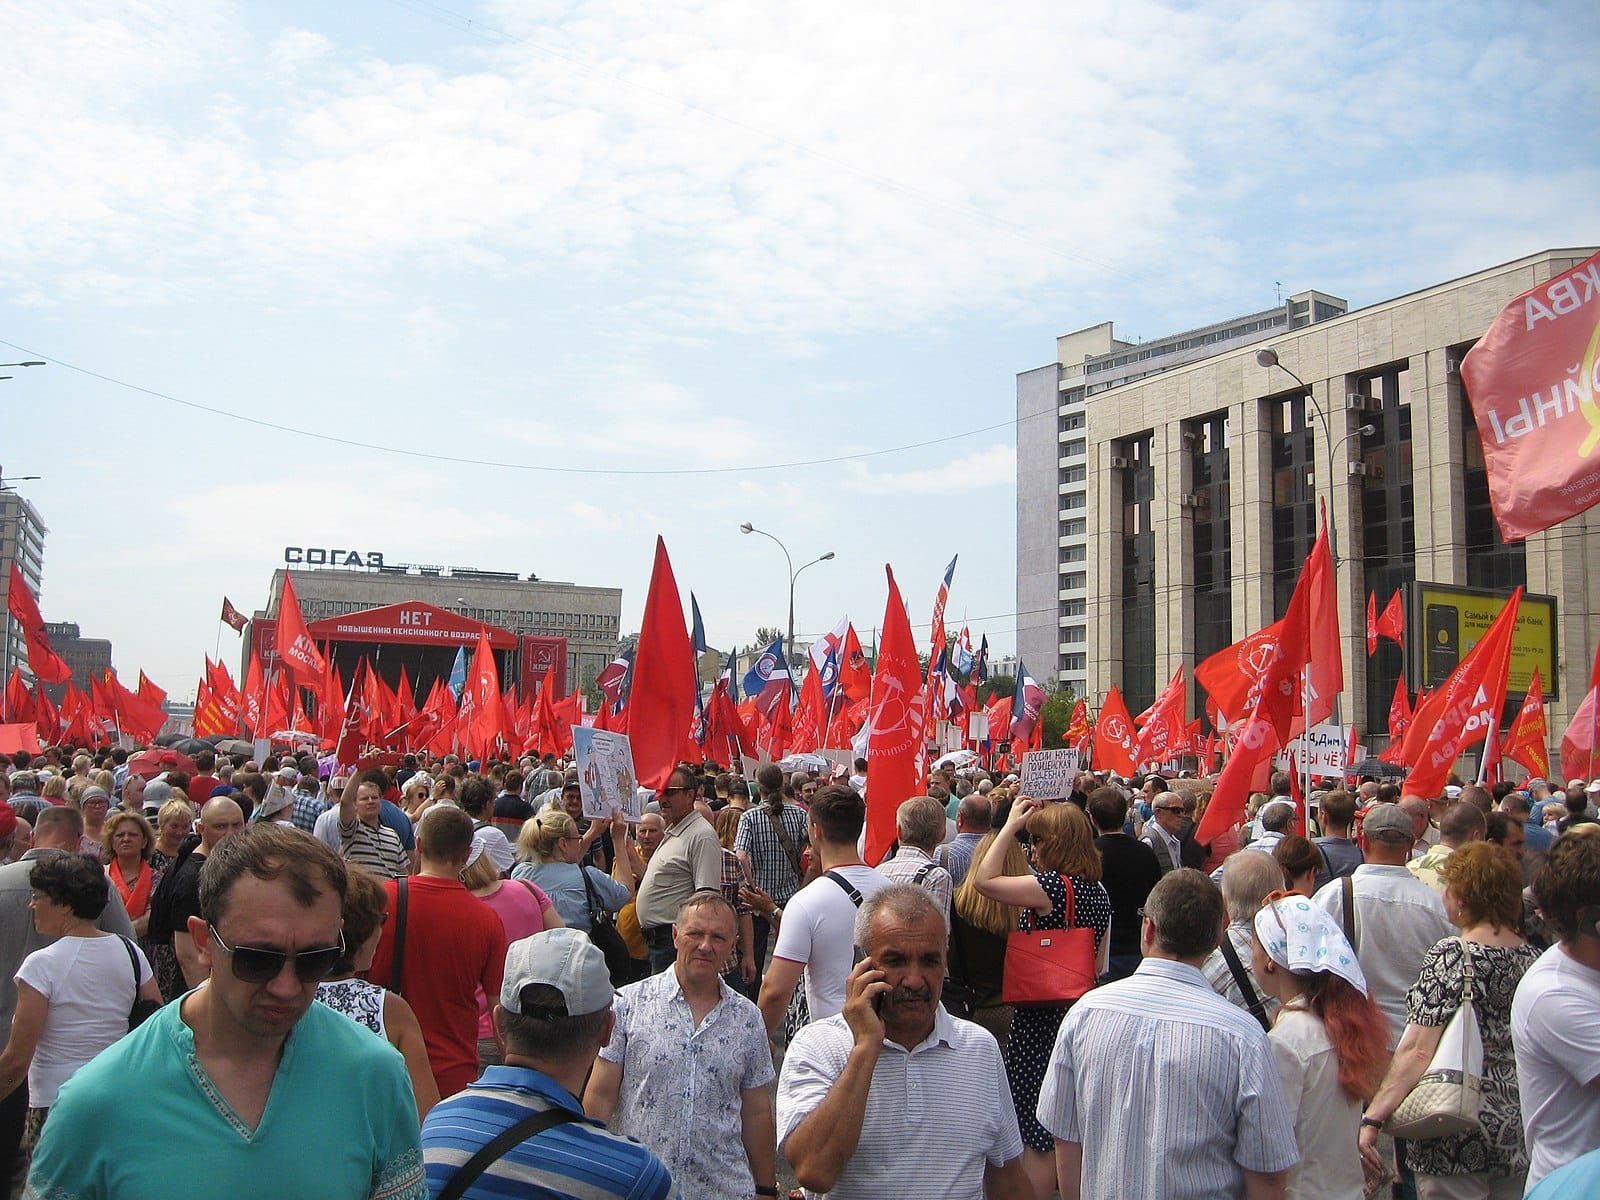 Protests against the pension reform